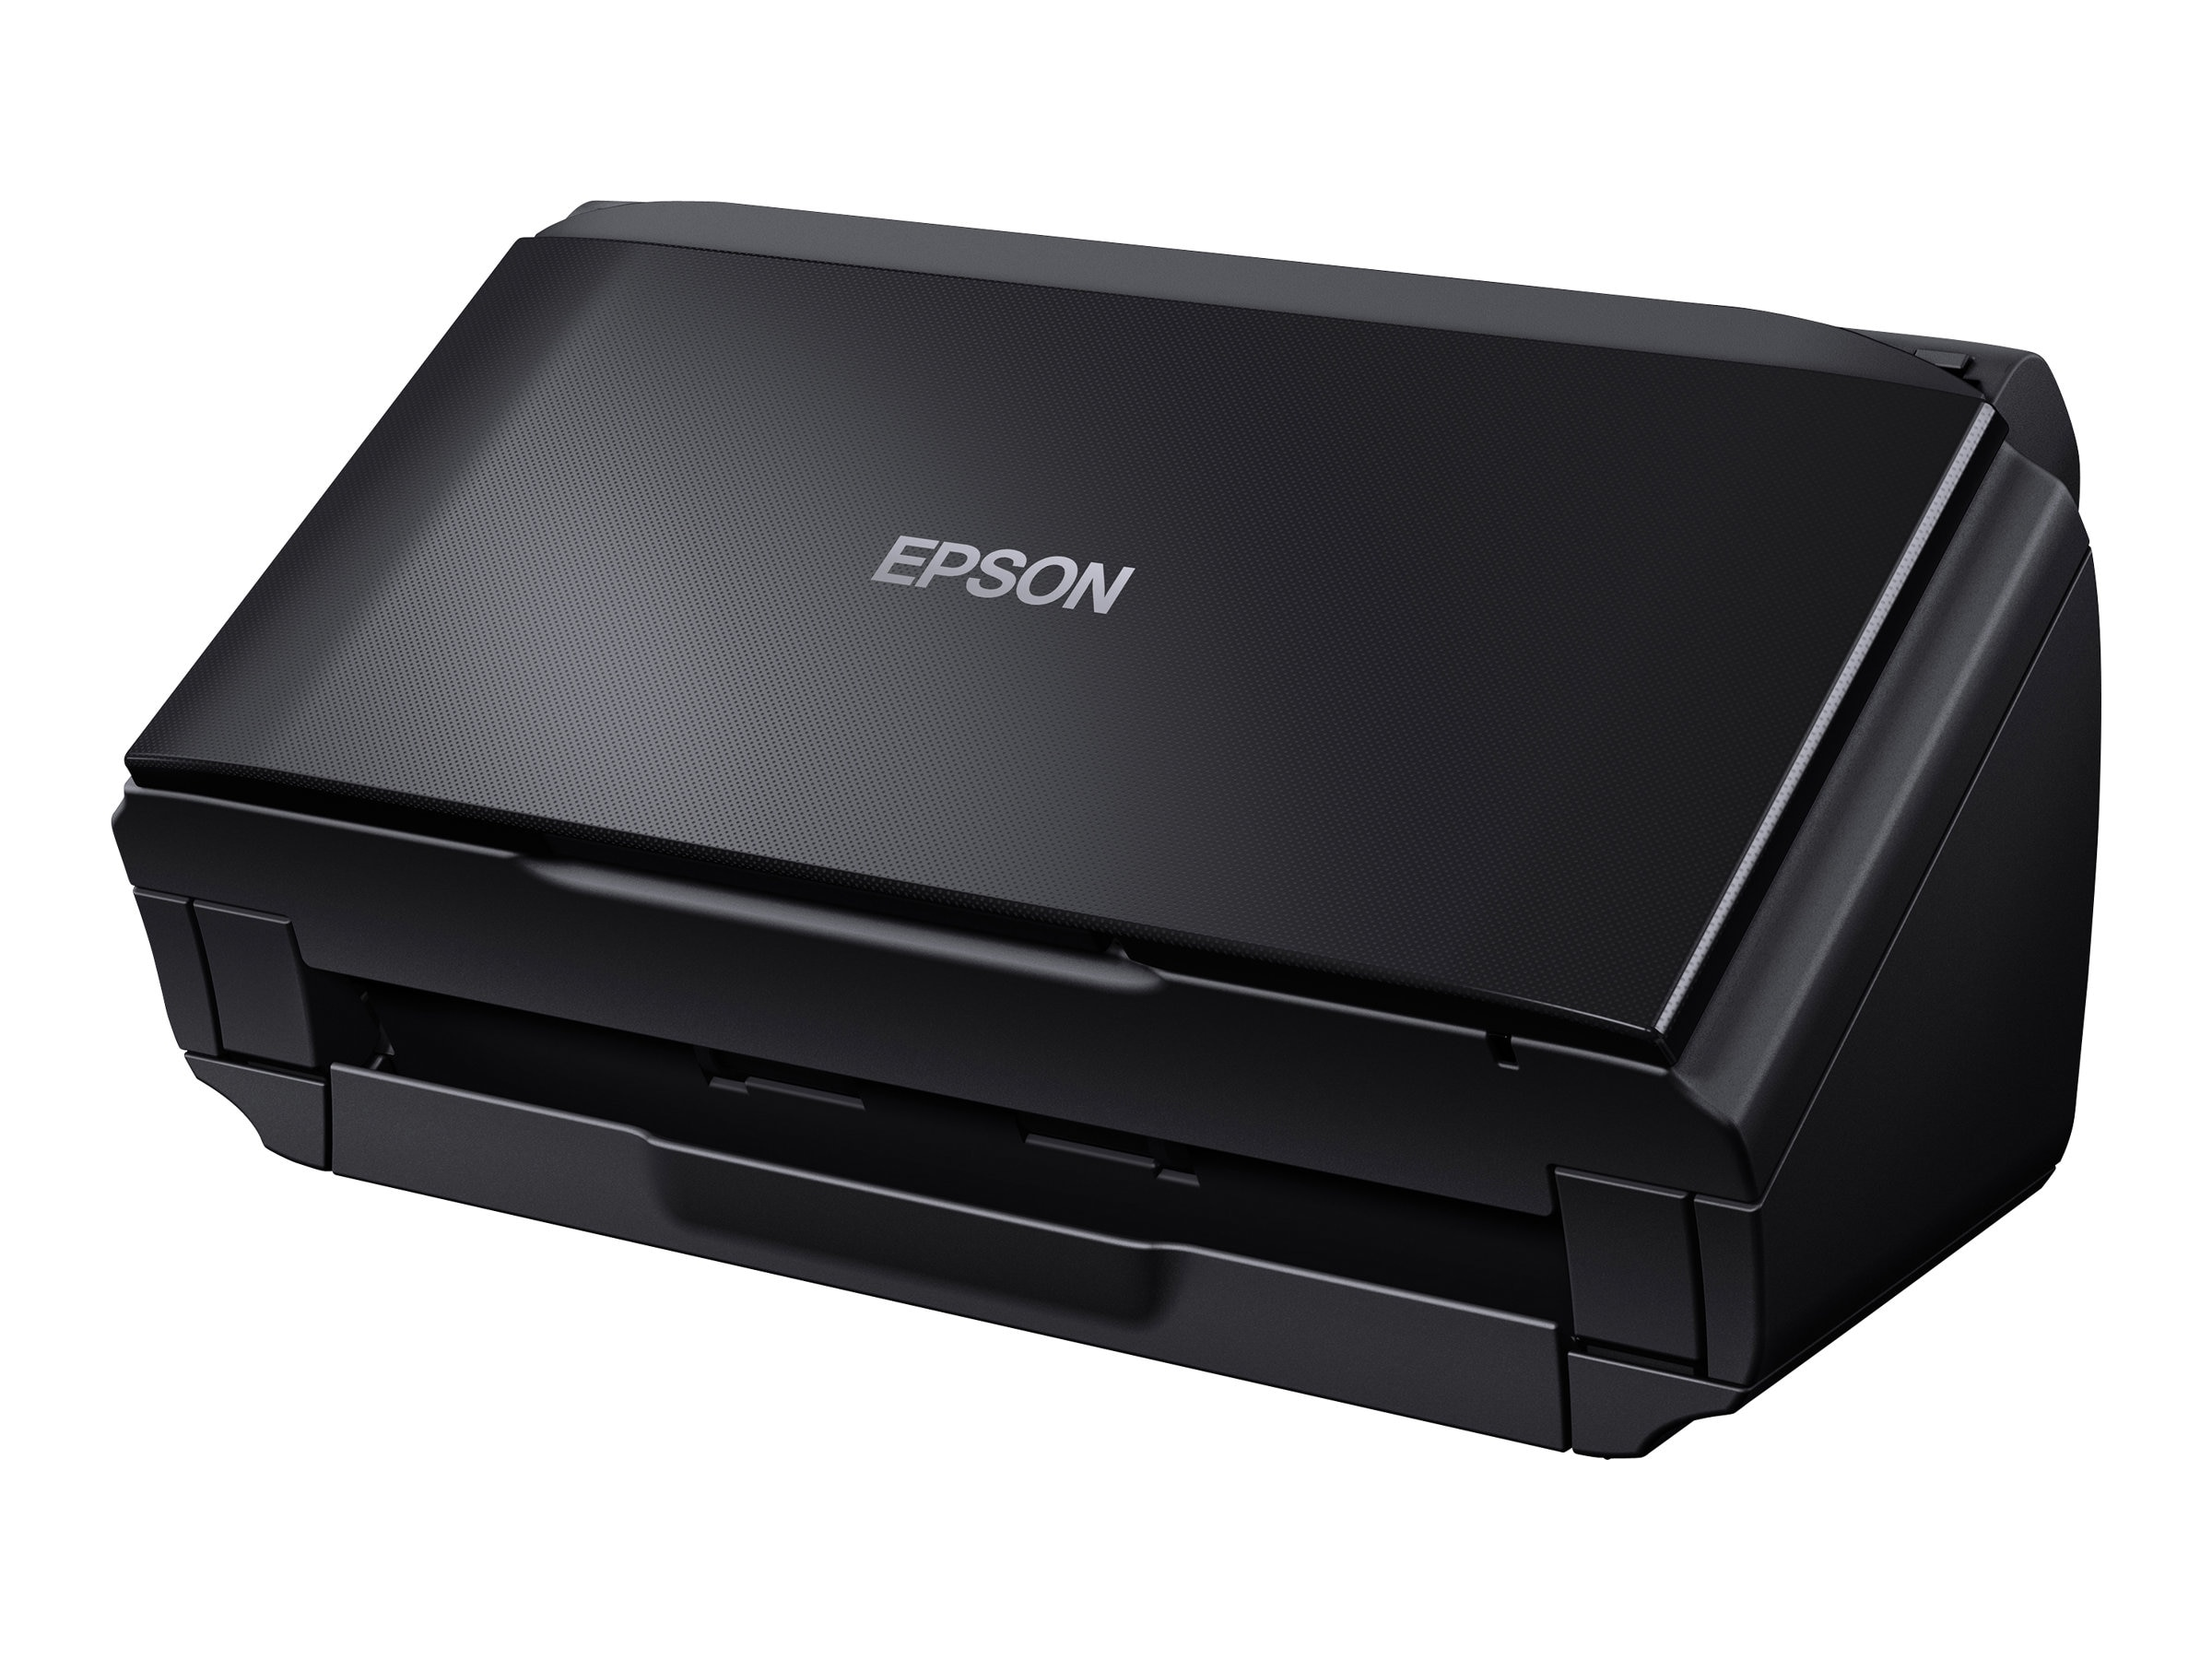 Epson WorkForce DS-520 Document Scanner